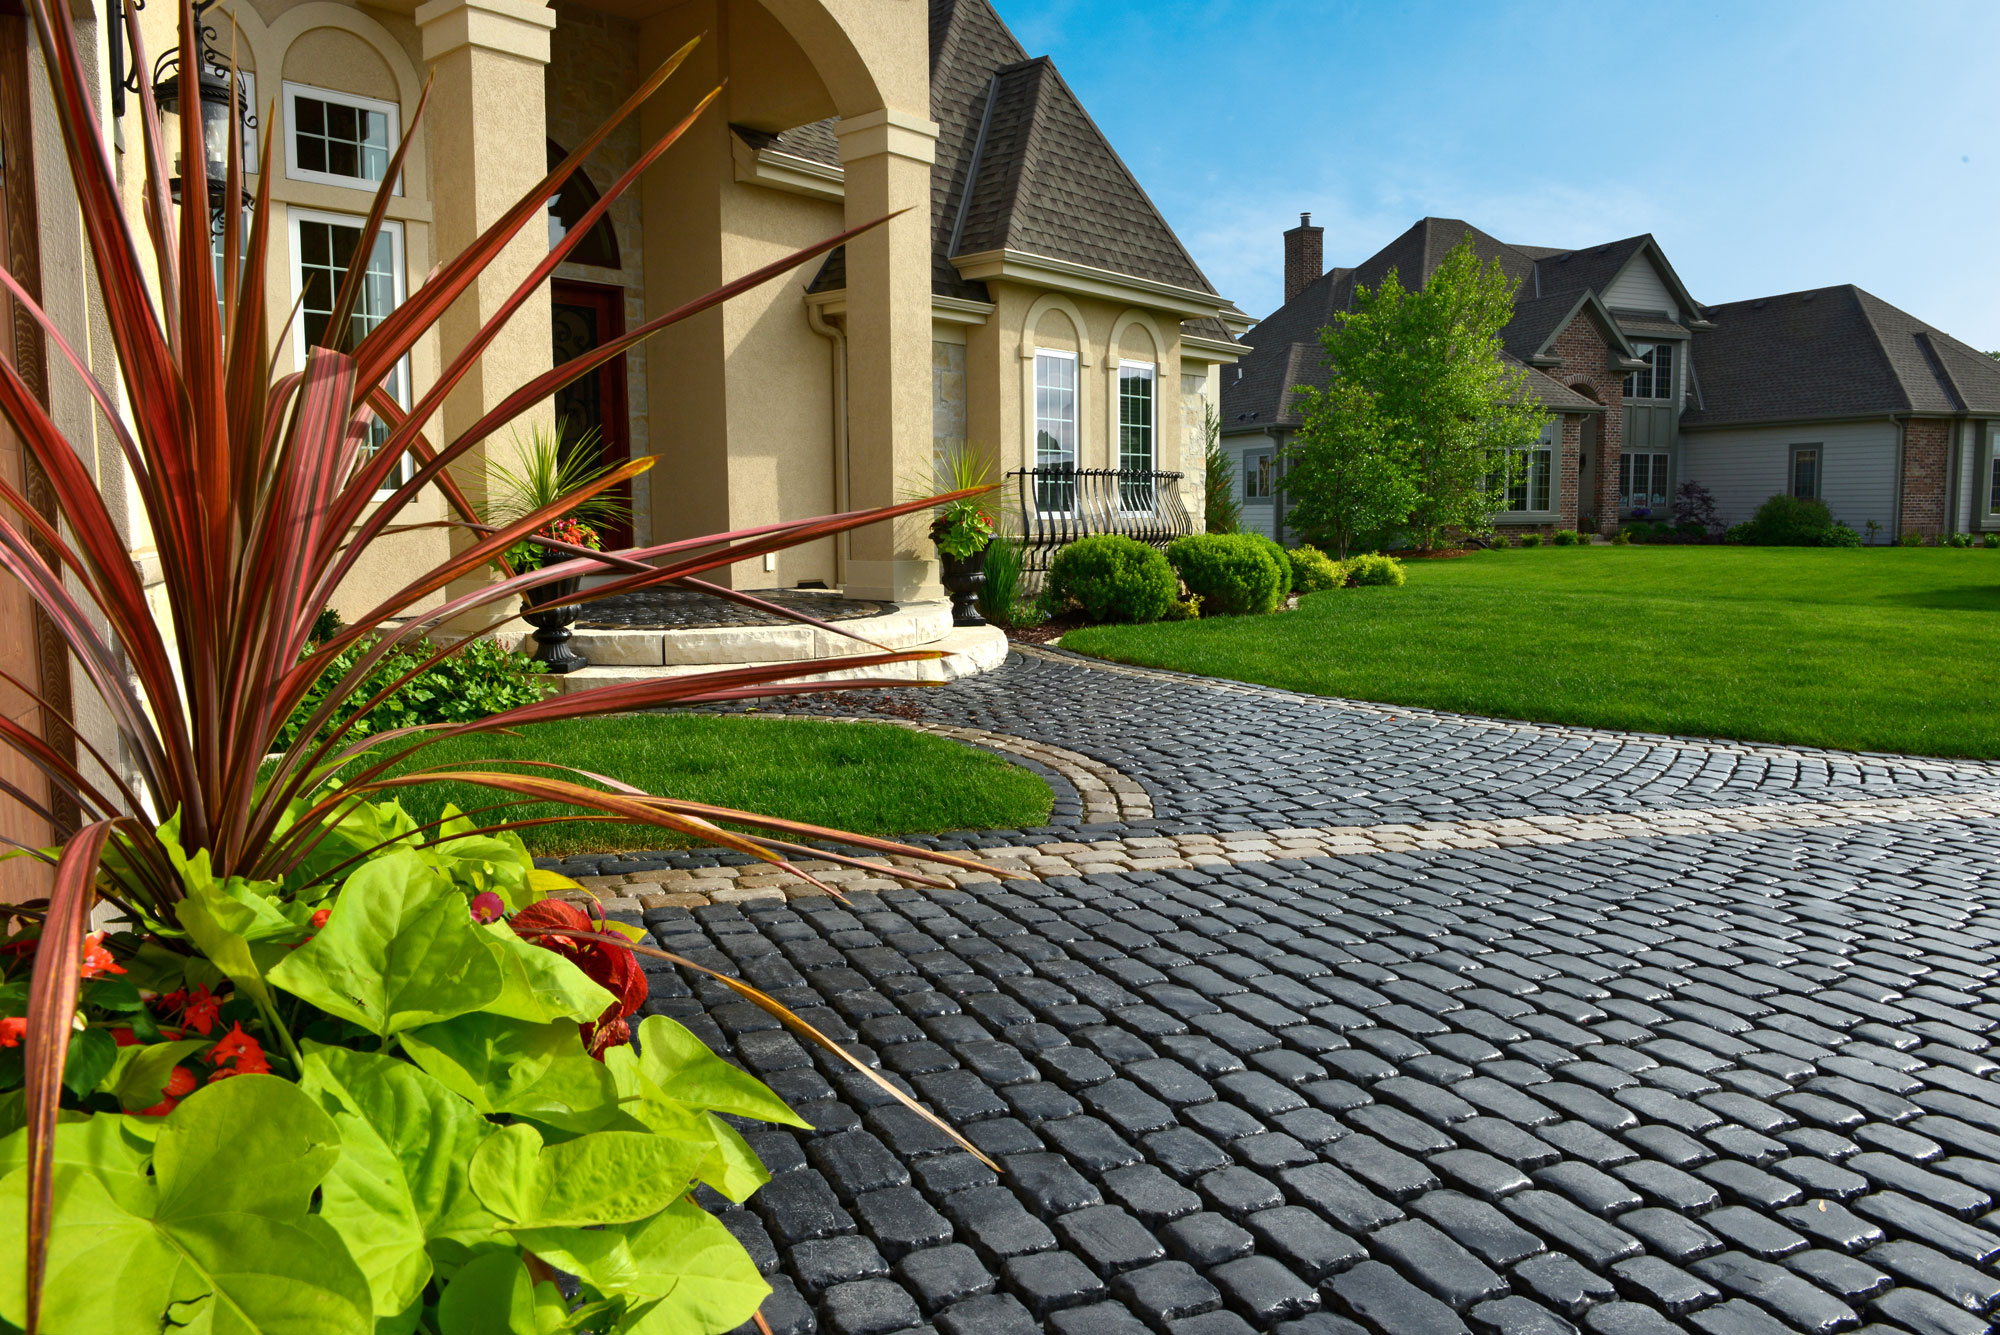 Driveway Pavers in NY, CT, NJ, PA